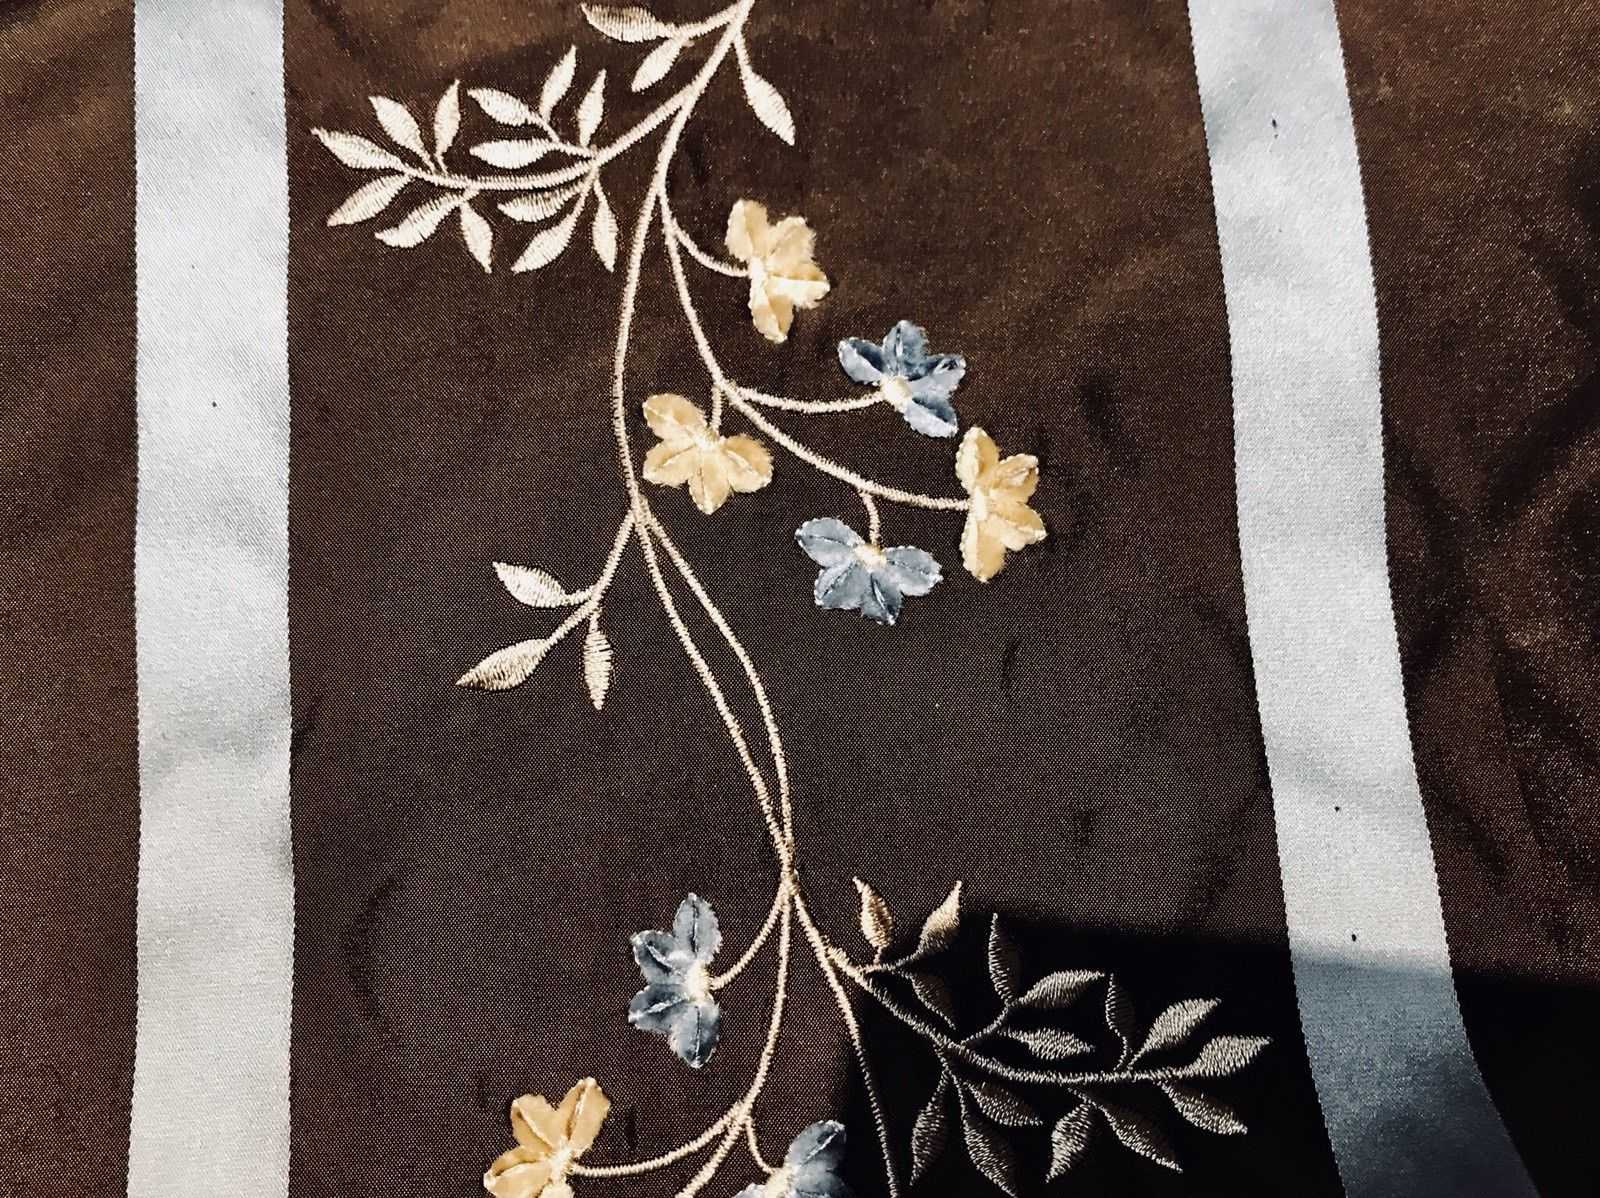 SALE! 100% Silk Taffeta Designer Fabric Embroidery Brown And Eggshell Blue - Fancy Styles Fabric Boutique